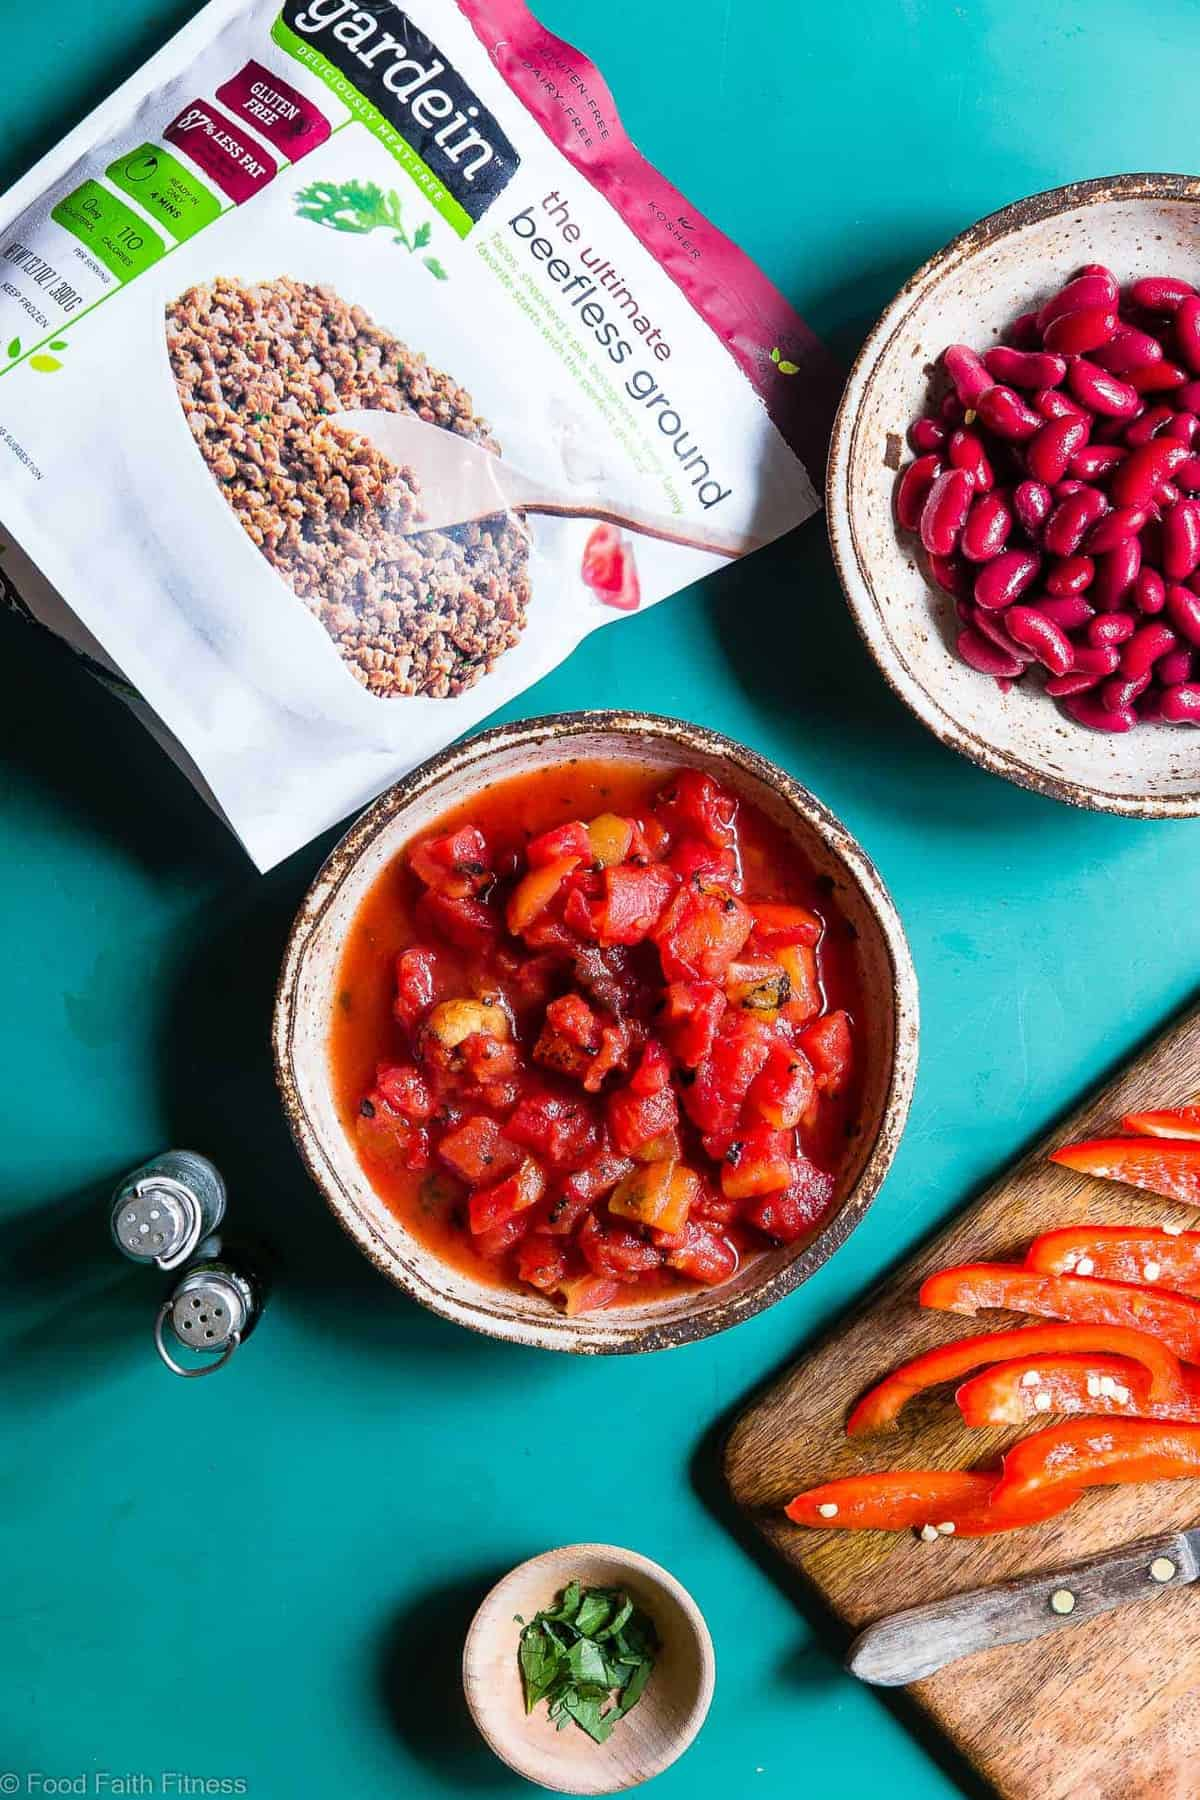 Instant Pot Meatless Easy Vegan Chili Recipe - You will NEVER believe that this is a vegetarian chili recipe! It's a healthy, gluten free weeknight meal that is ready in only 30 minutes! Even meat-eaters are going to LOVE this recipe! | #Foodfaithfitness | #Vegan #Vegetarian #Chili #Instantpot #healthy